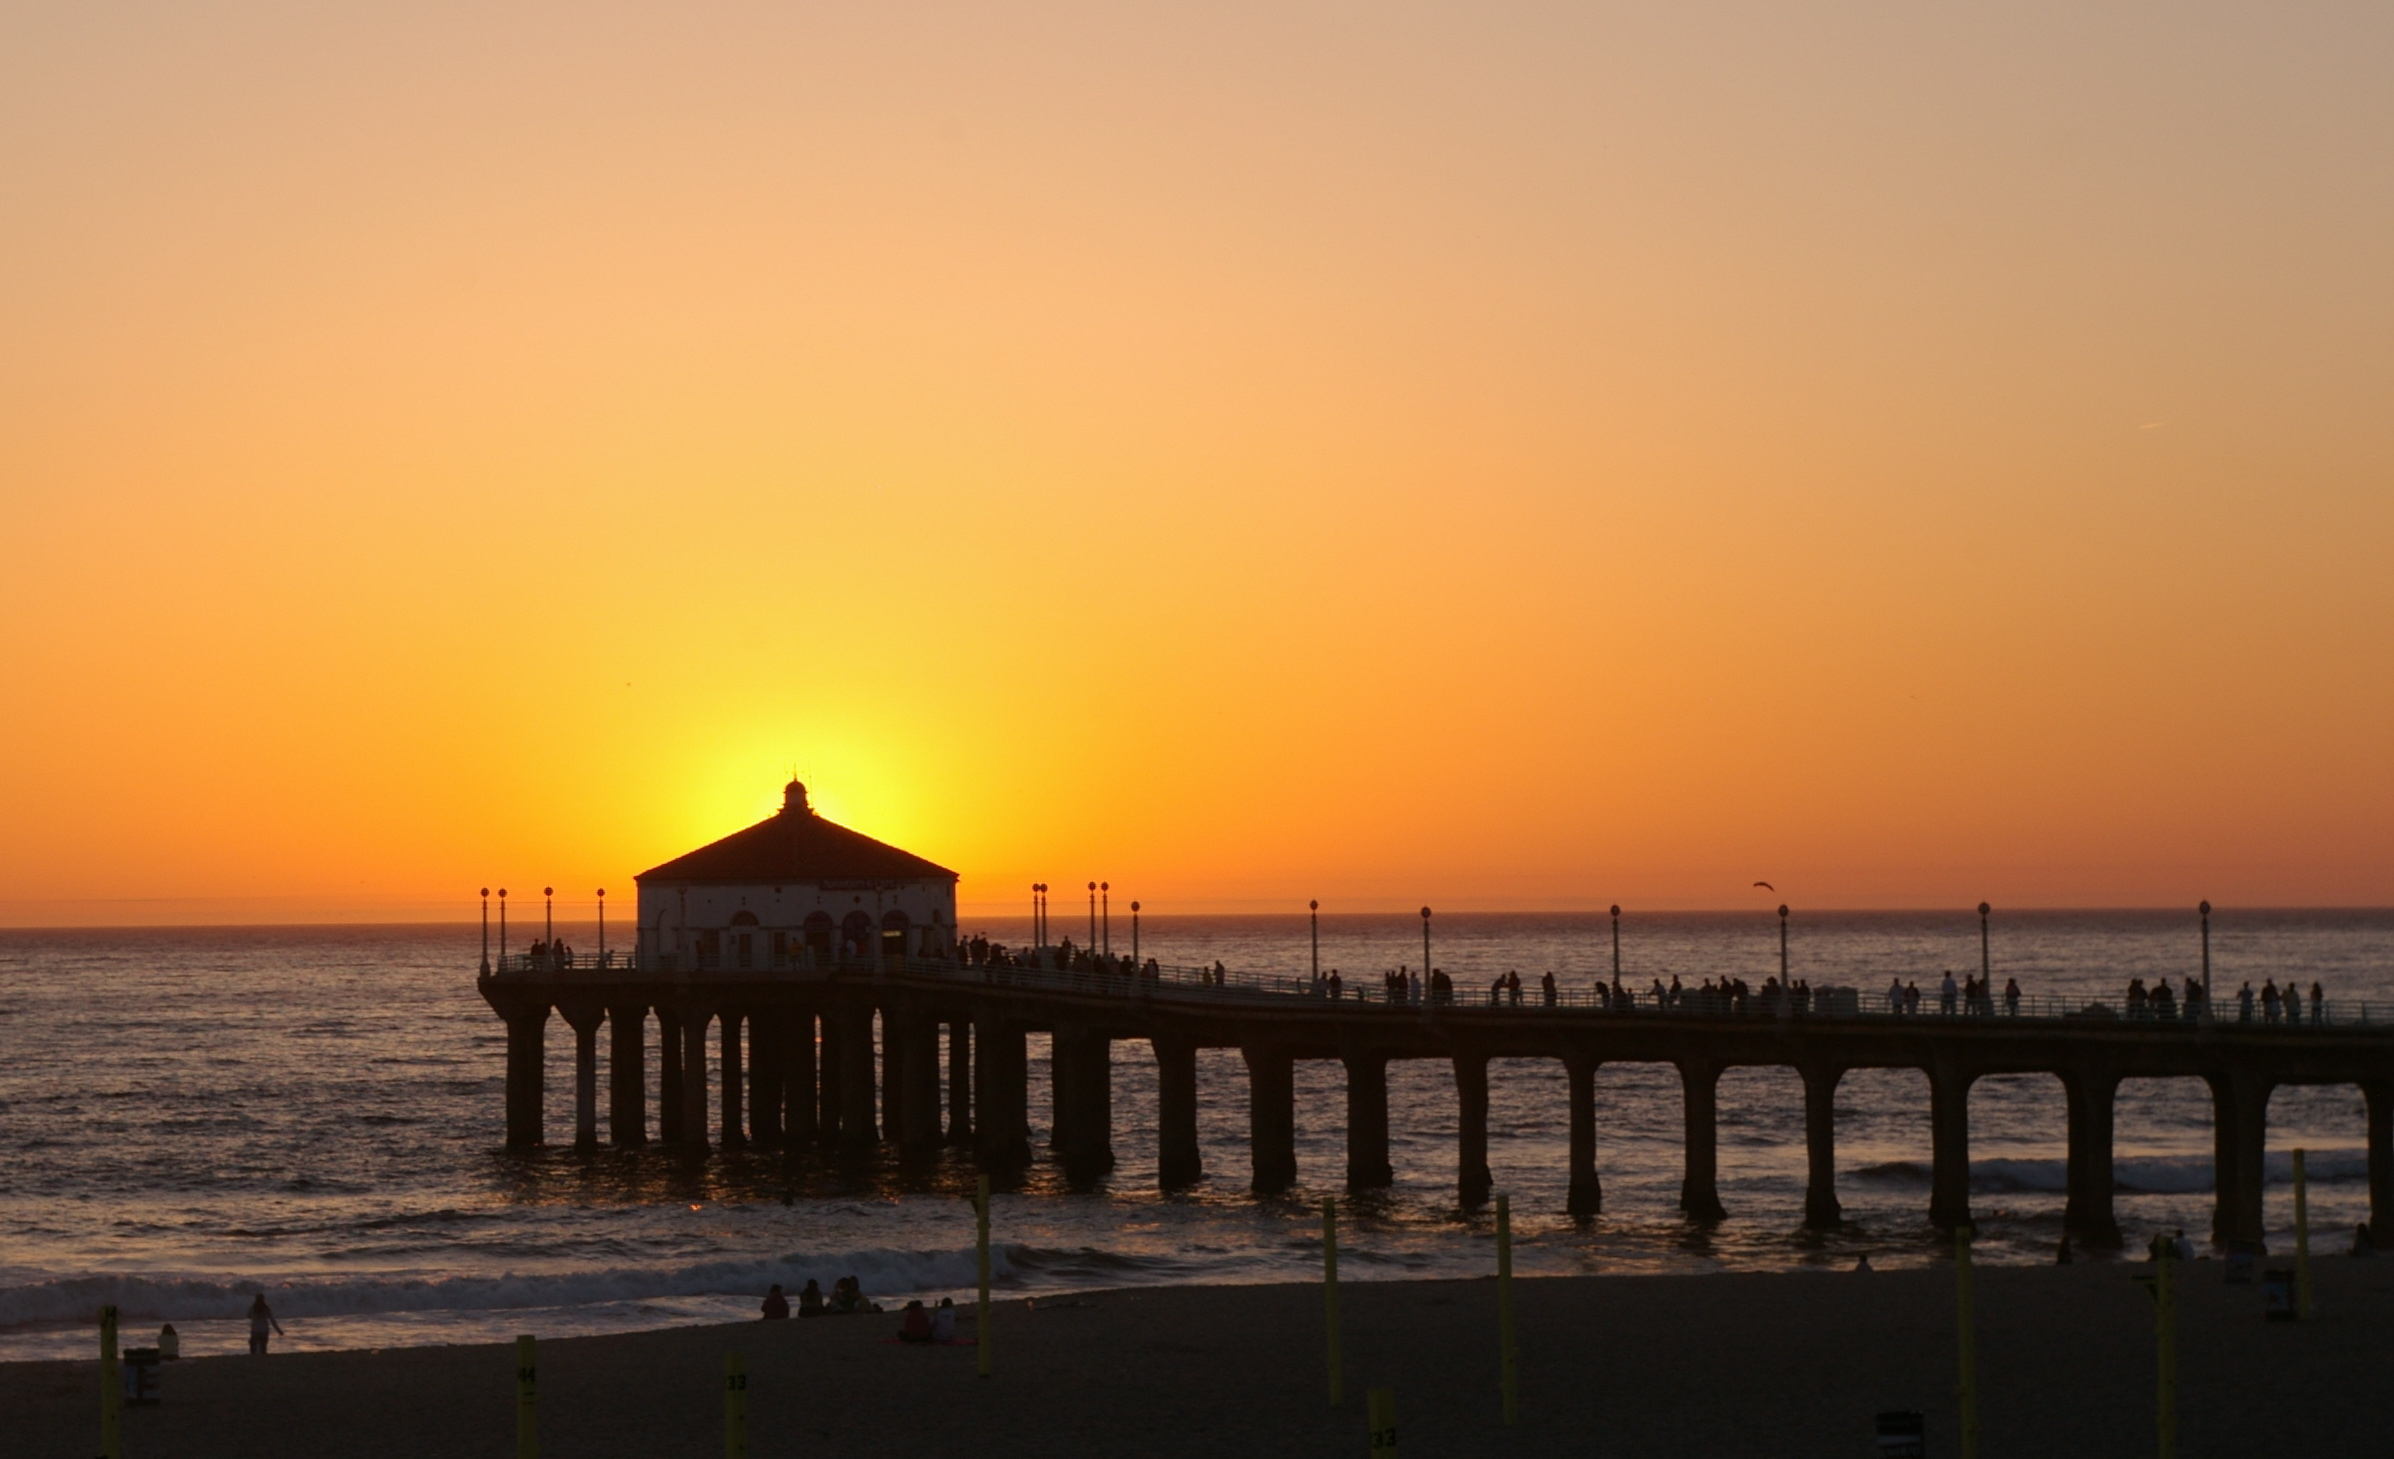 Manhattan Beach Pier at sunset with the sun behind the roundhouse at piers end Gang Member Found Washed Up On Brooklyn Beach Wearing Cement Shoes